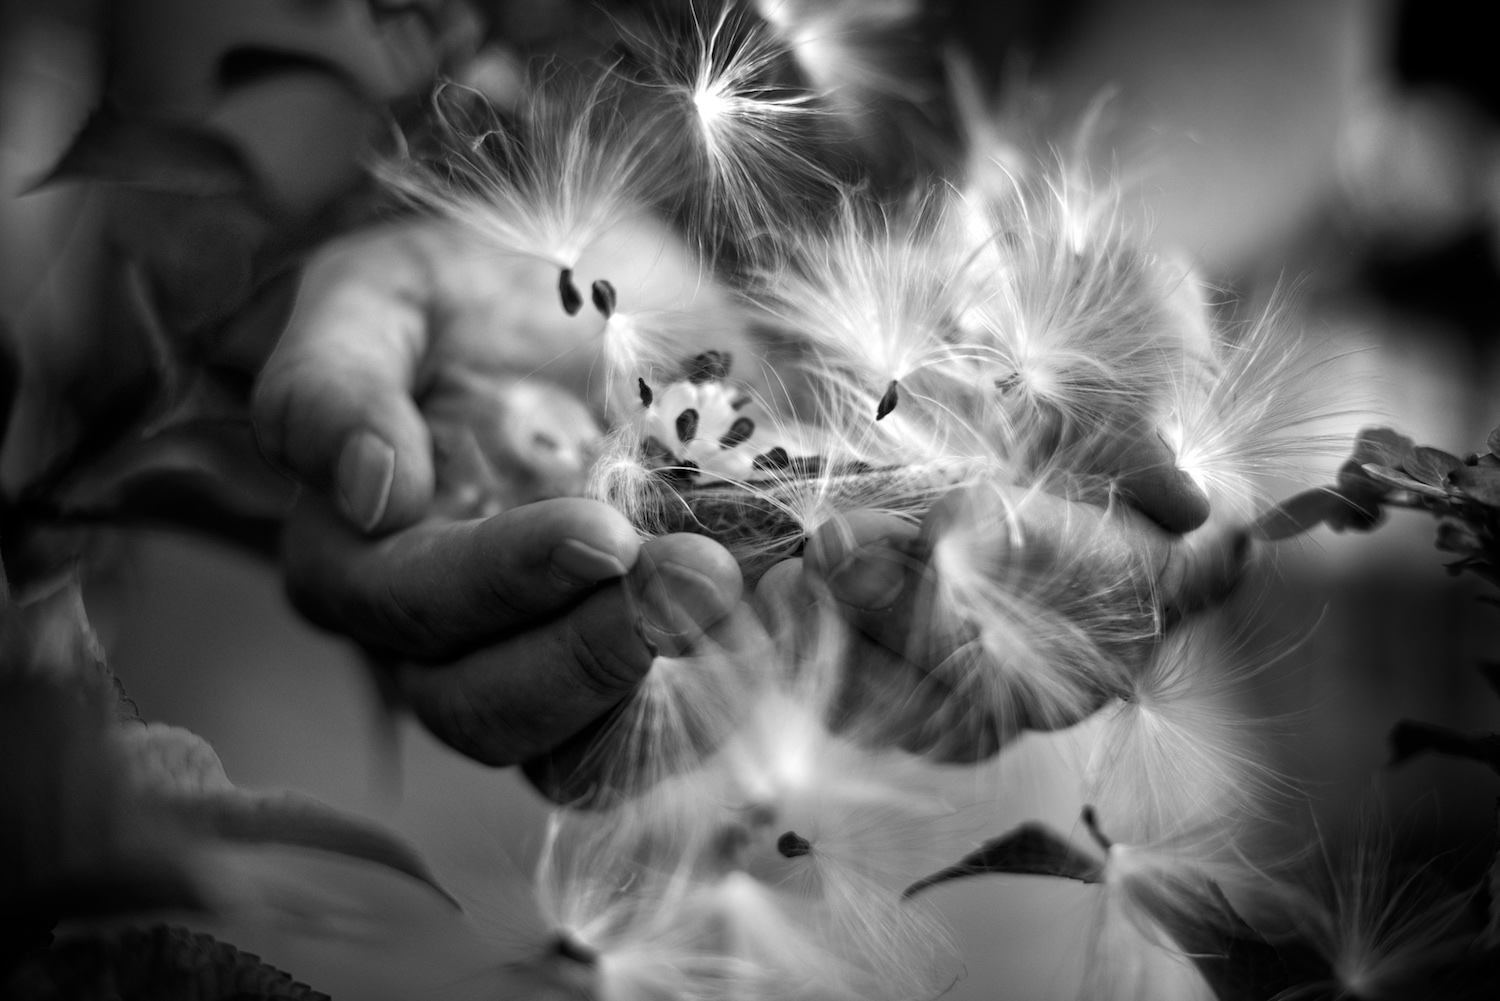 Black and White Photograph, Midwest, Seeds, Hands, Milk Weed, Interior Design, Wall Art